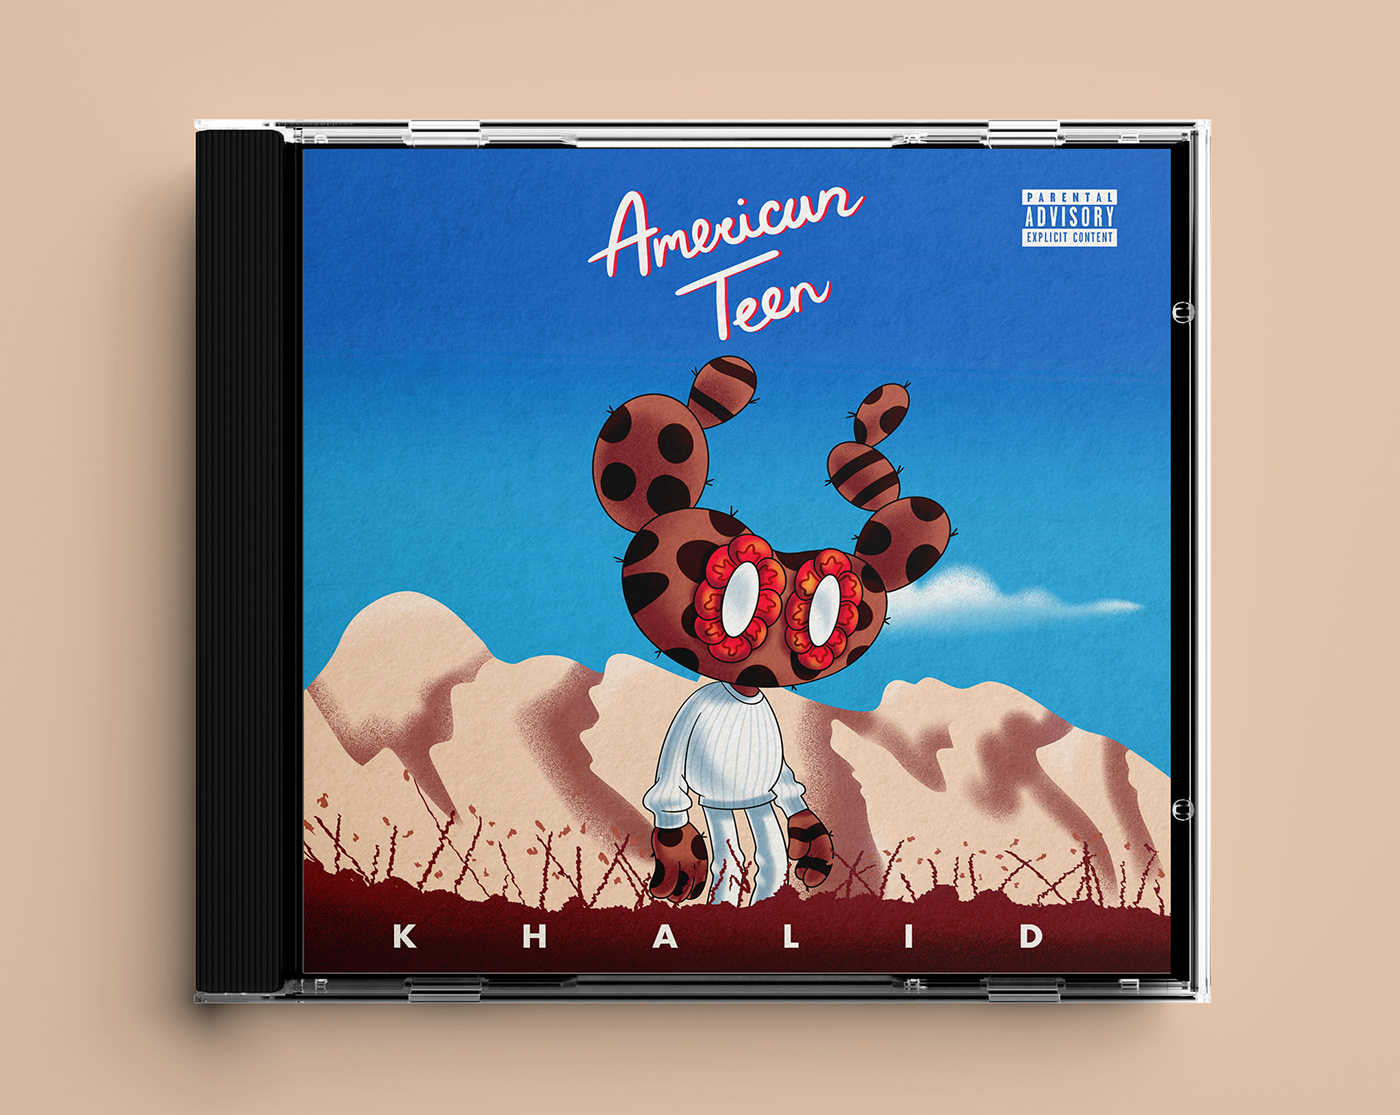 """Beppe the Prickly Pear illustrated, Imitating The iconic Album """"American Teen"""" by Khalid."""